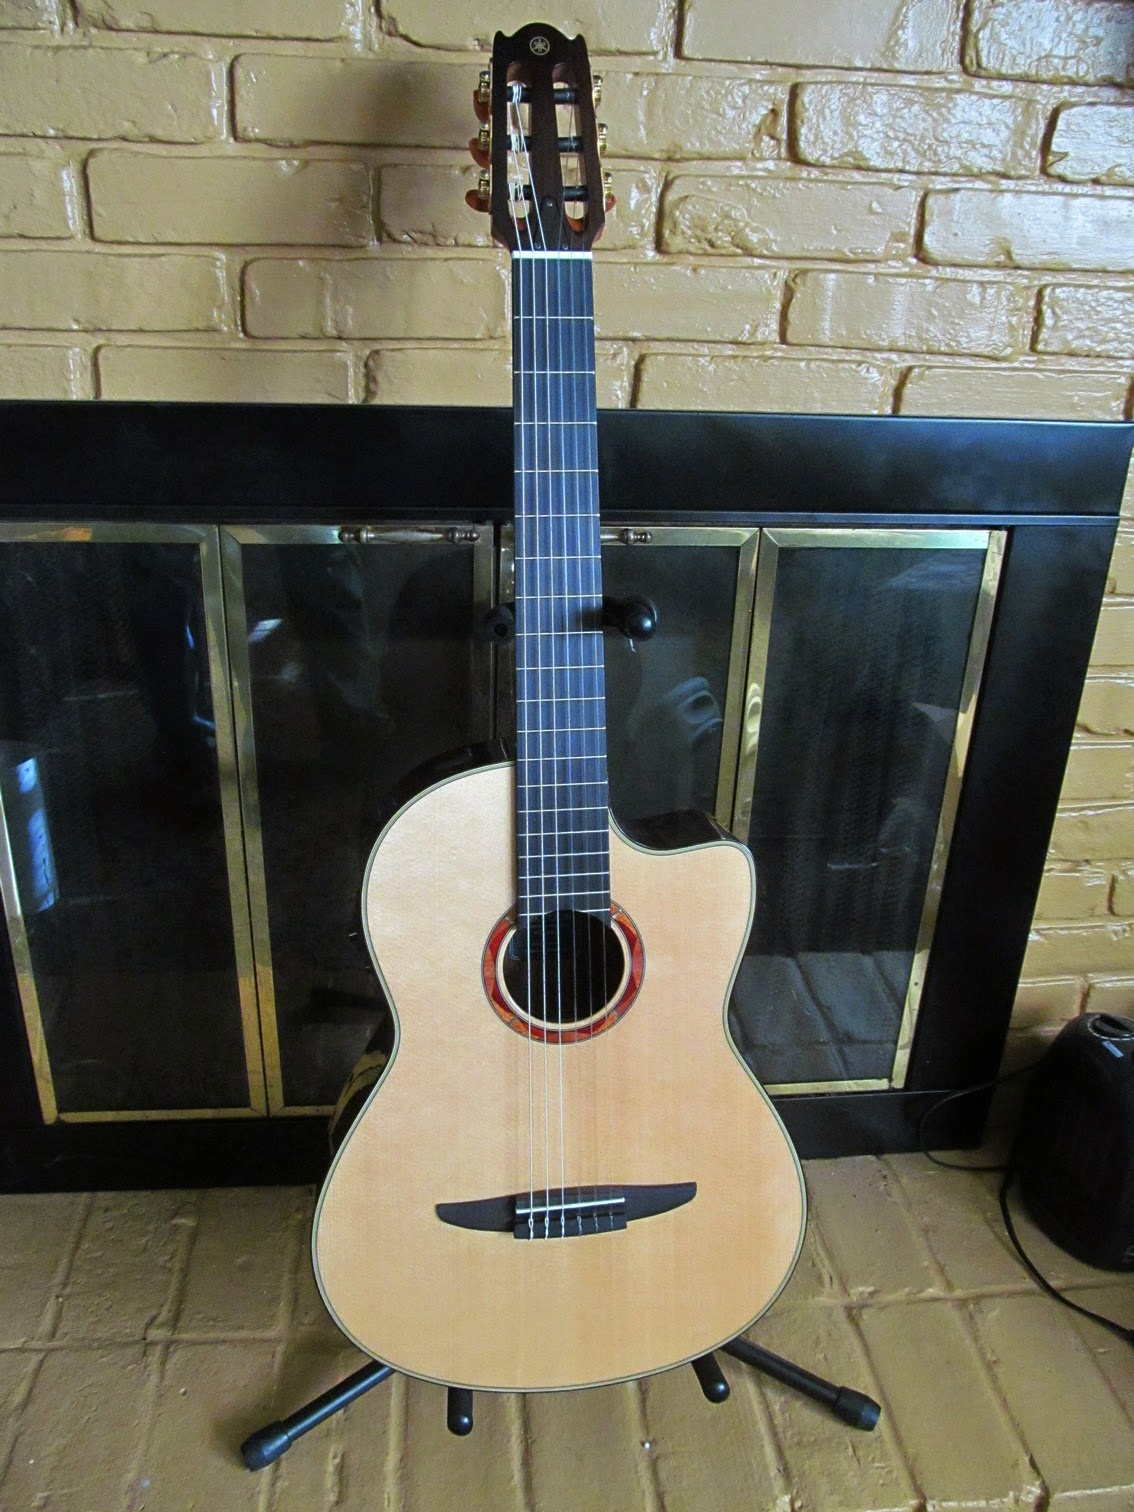 douglas jones music yamaha ncx1200r acoustic electric nylon string guitar mini review. Black Bedroom Furniture Sets. Home Design Ideas